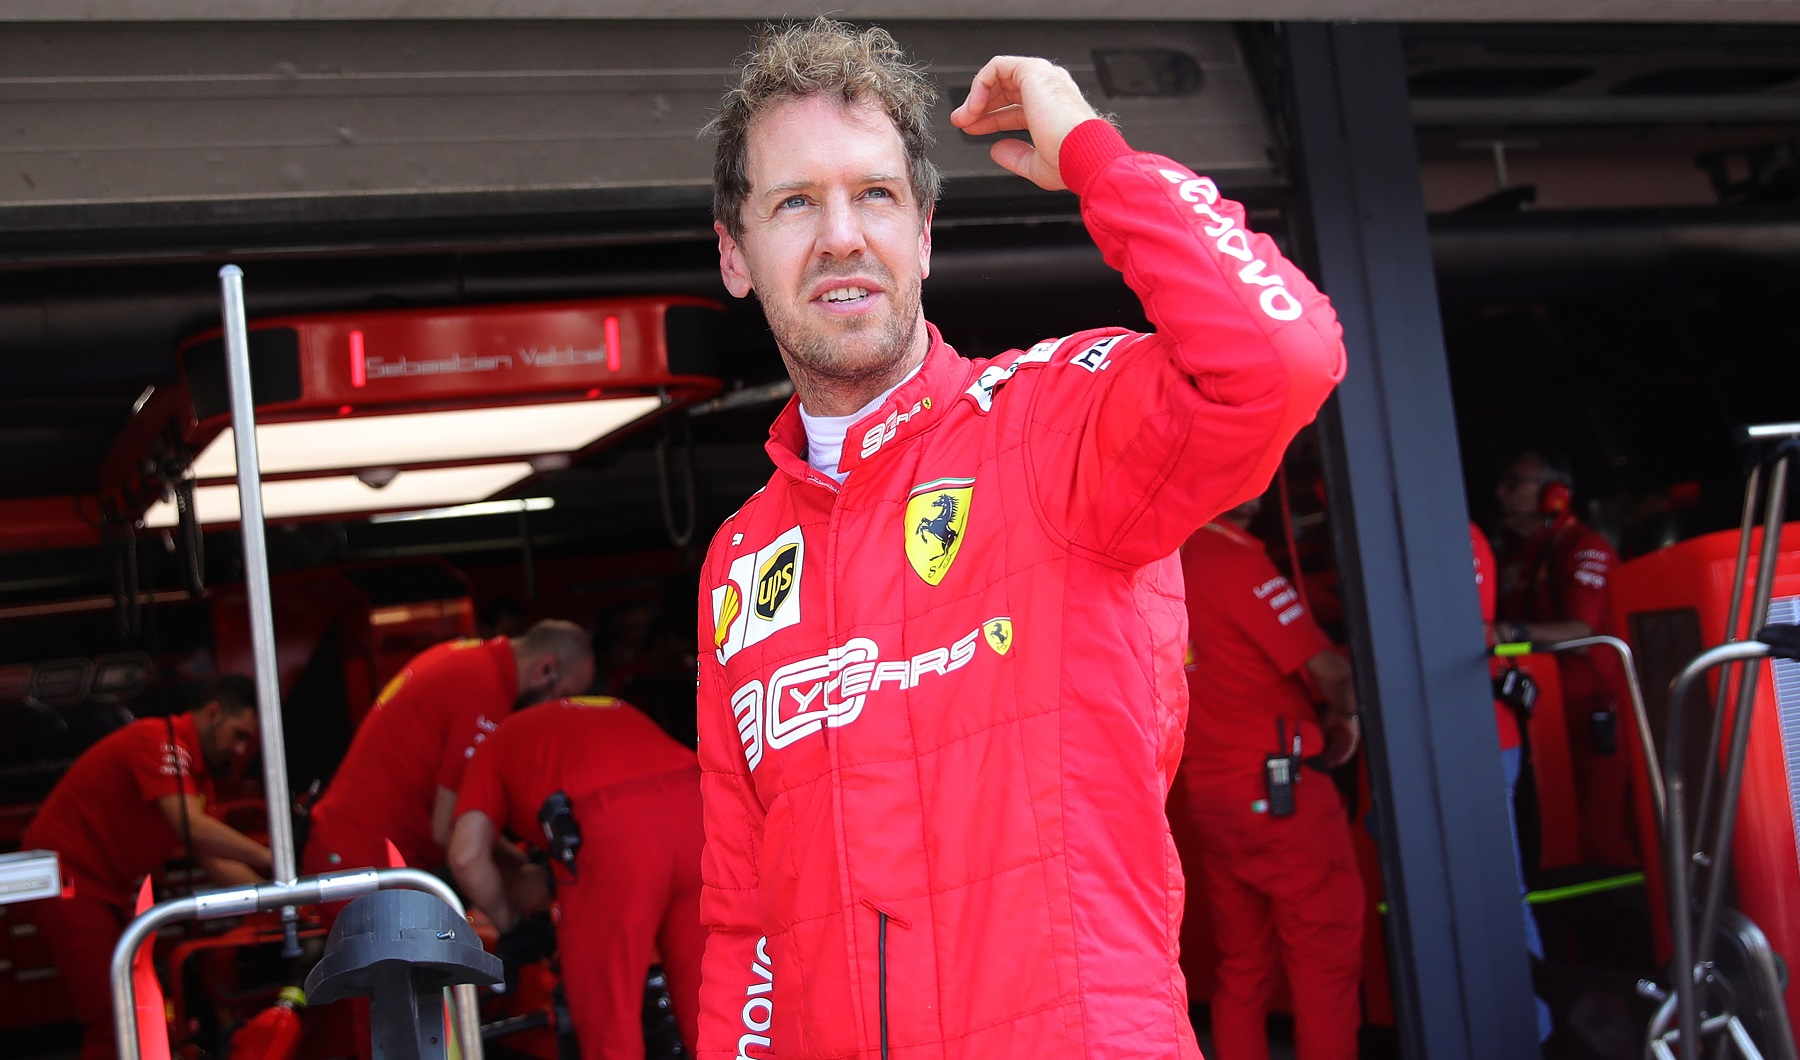 Sebastian Vettel Received Support From an Unlikely Source in His Worst Formula 1 Season